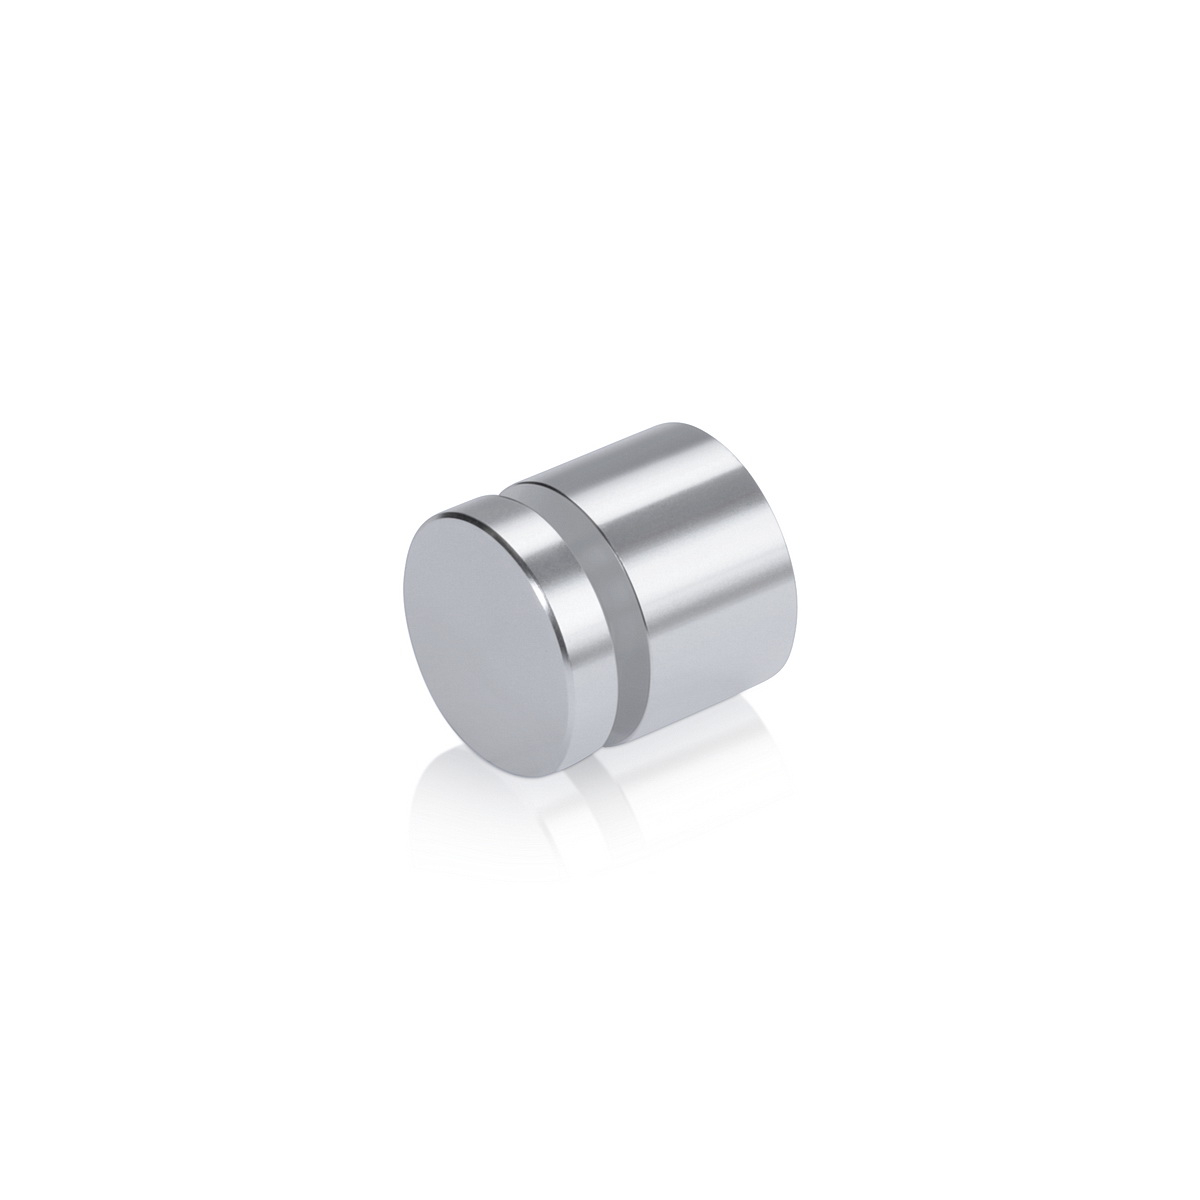 Affordable Aluminum Standoffs, Diameter: 3/4'', Standoff: 1/2'', Aluminum Silver Finish